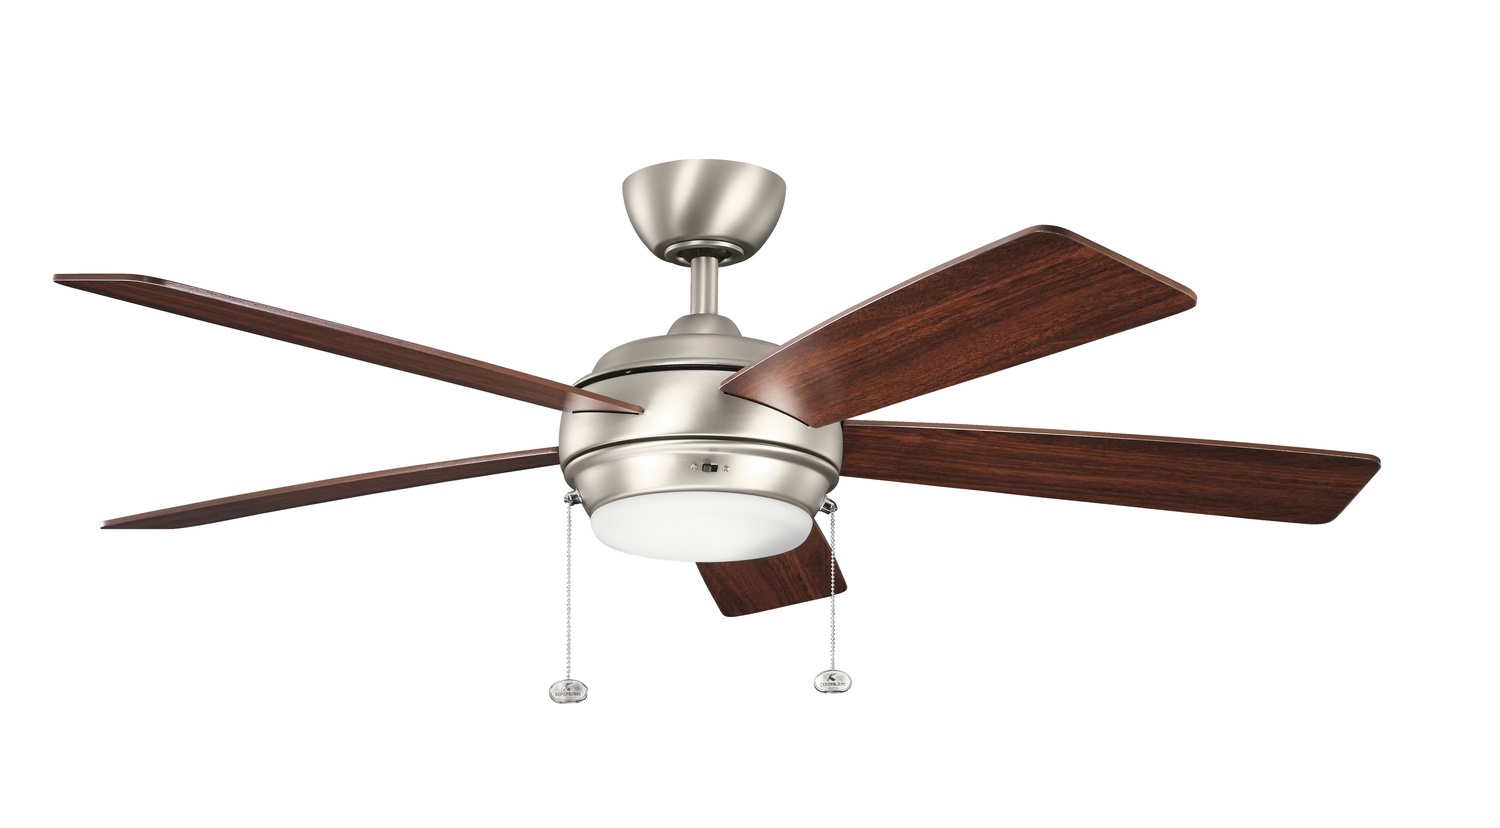 52 inchCeiling Fan from the Starkk collection by Kichler 300173NI